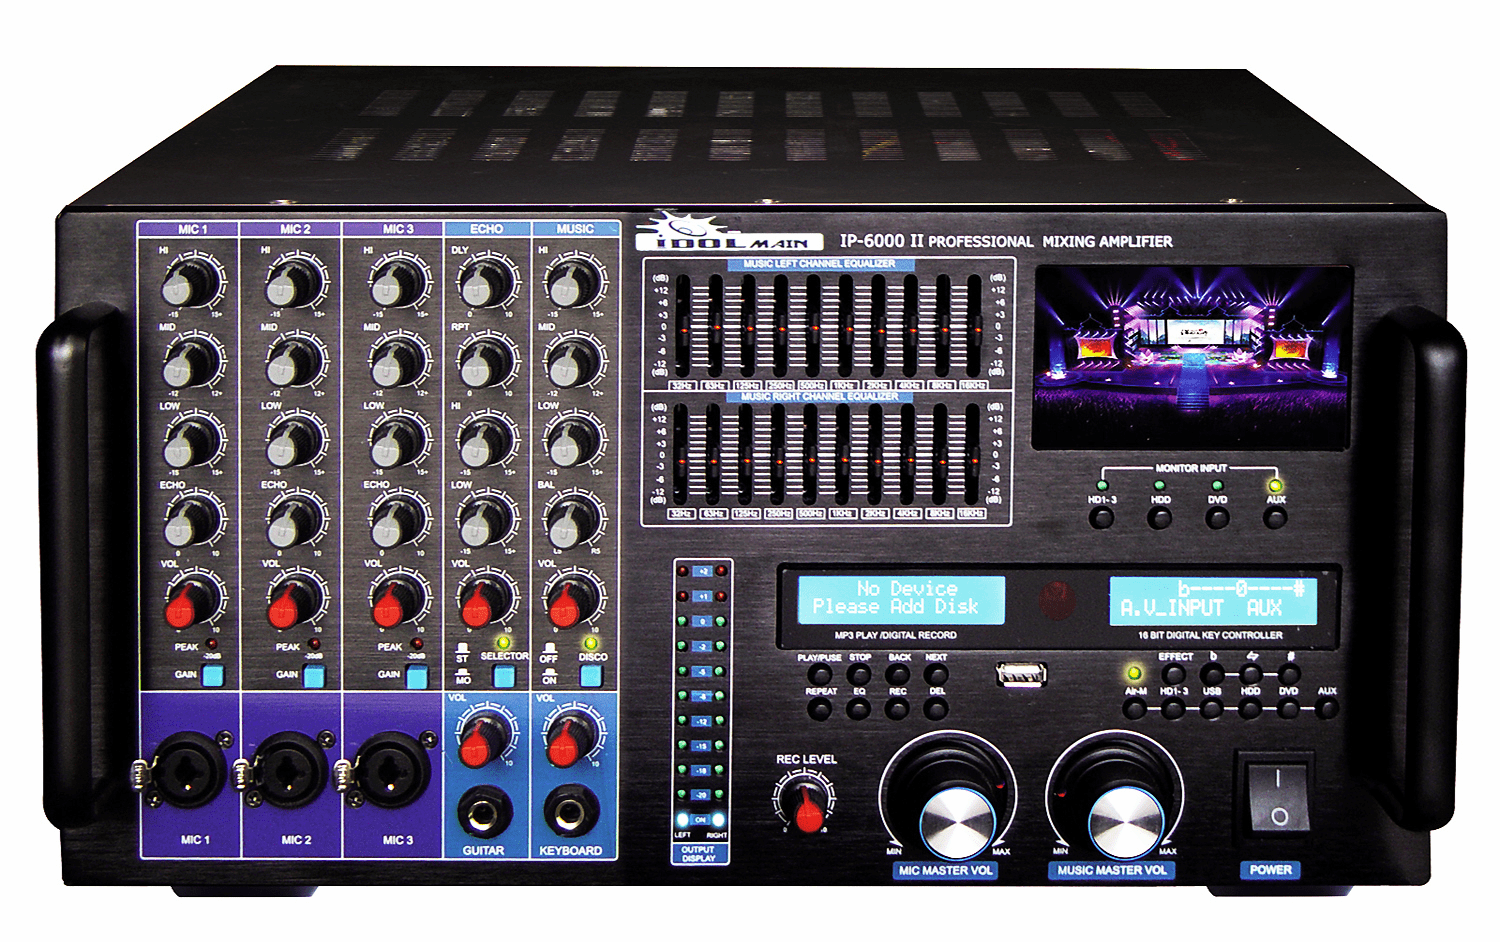 IDOLmain IP-6000 II Bluetooth/HDMI/Recording/LCD Screen/10 Band Equalizer  8000W Professional Console Mixing Amplifier